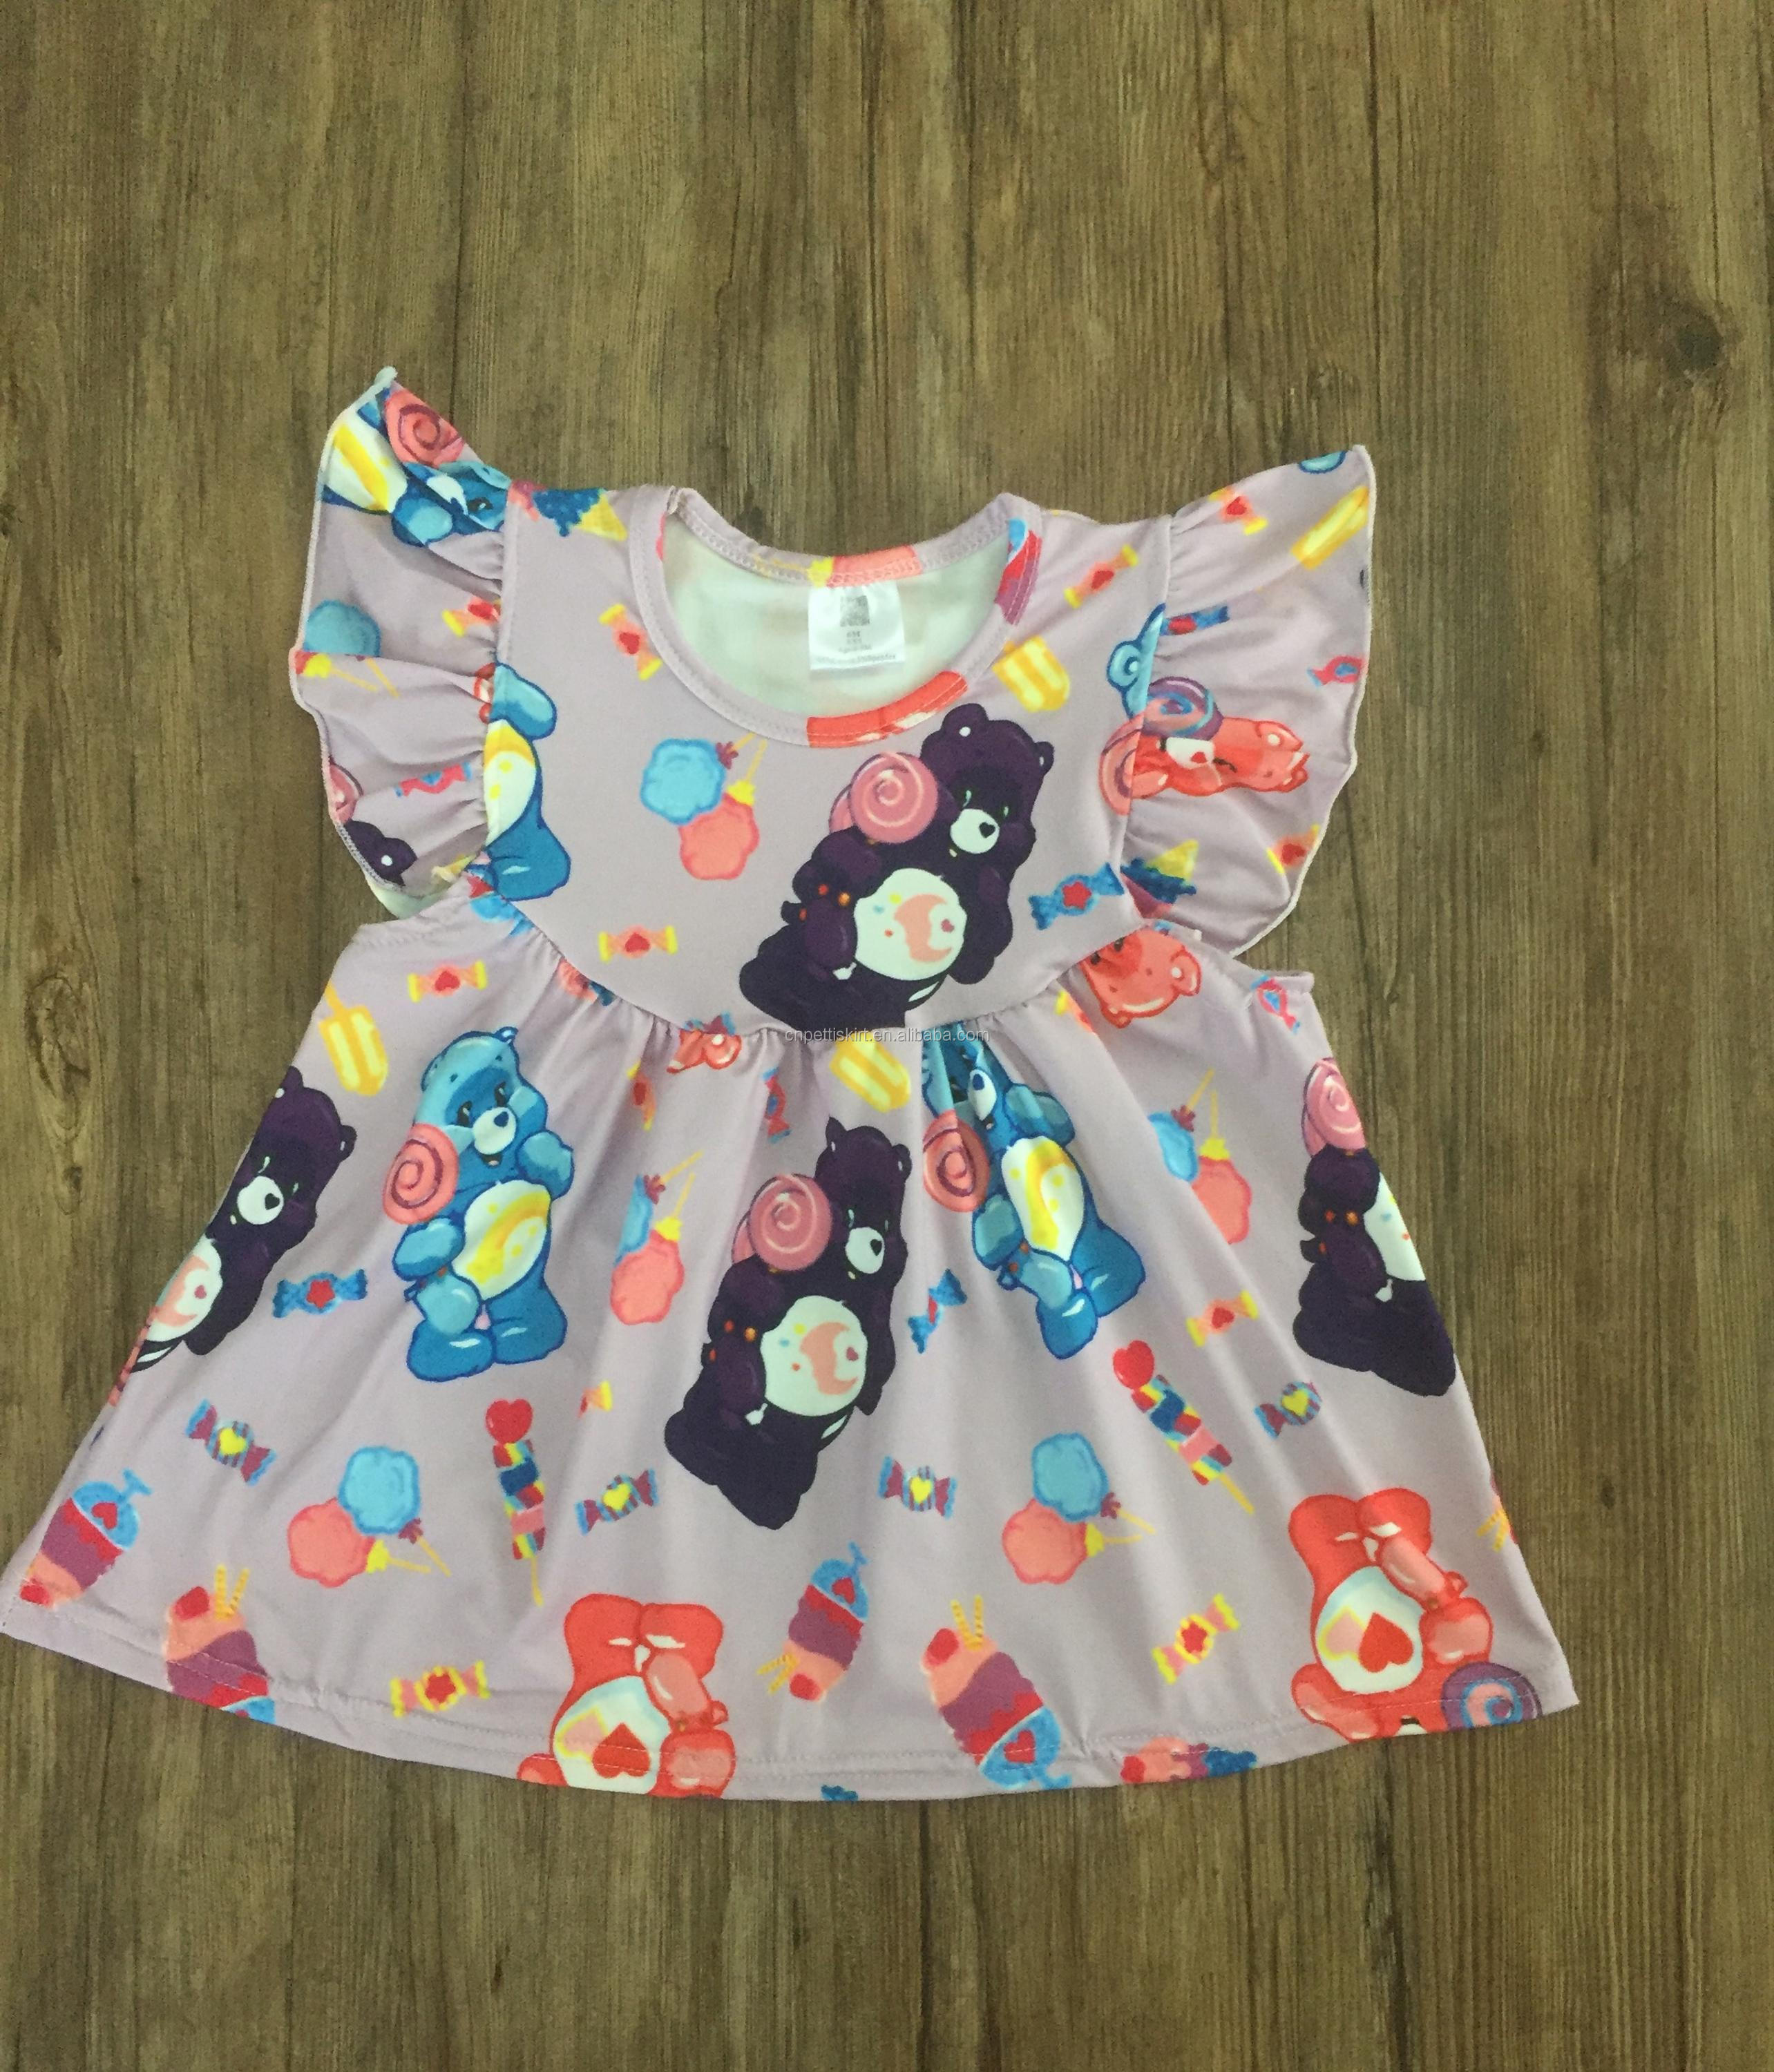 Baby Pearl Dress Baby Pearl Dress Suppliers and Manufacturers at